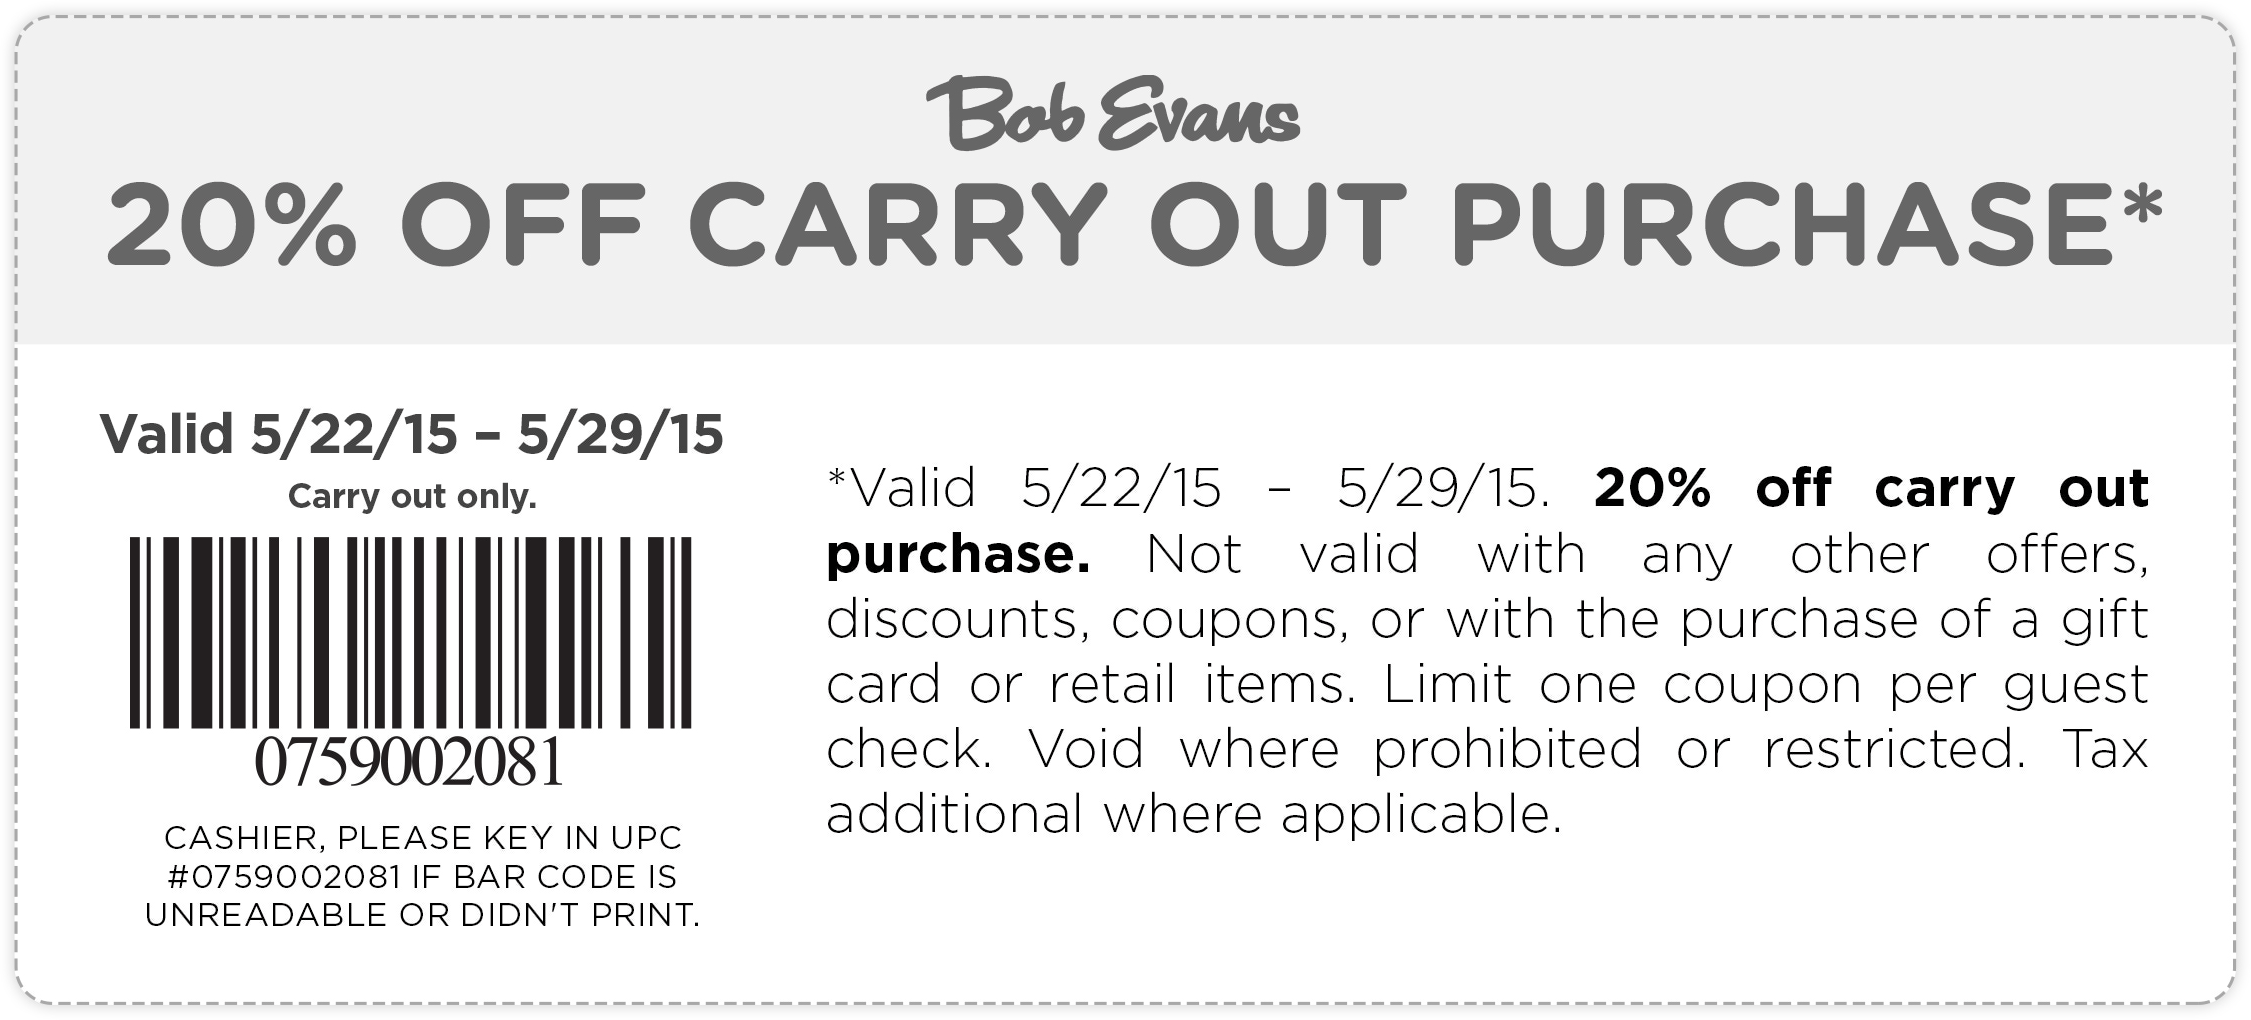 Bob Evans Coupon January 2017 20% off takeout at Bob Evans restaurants